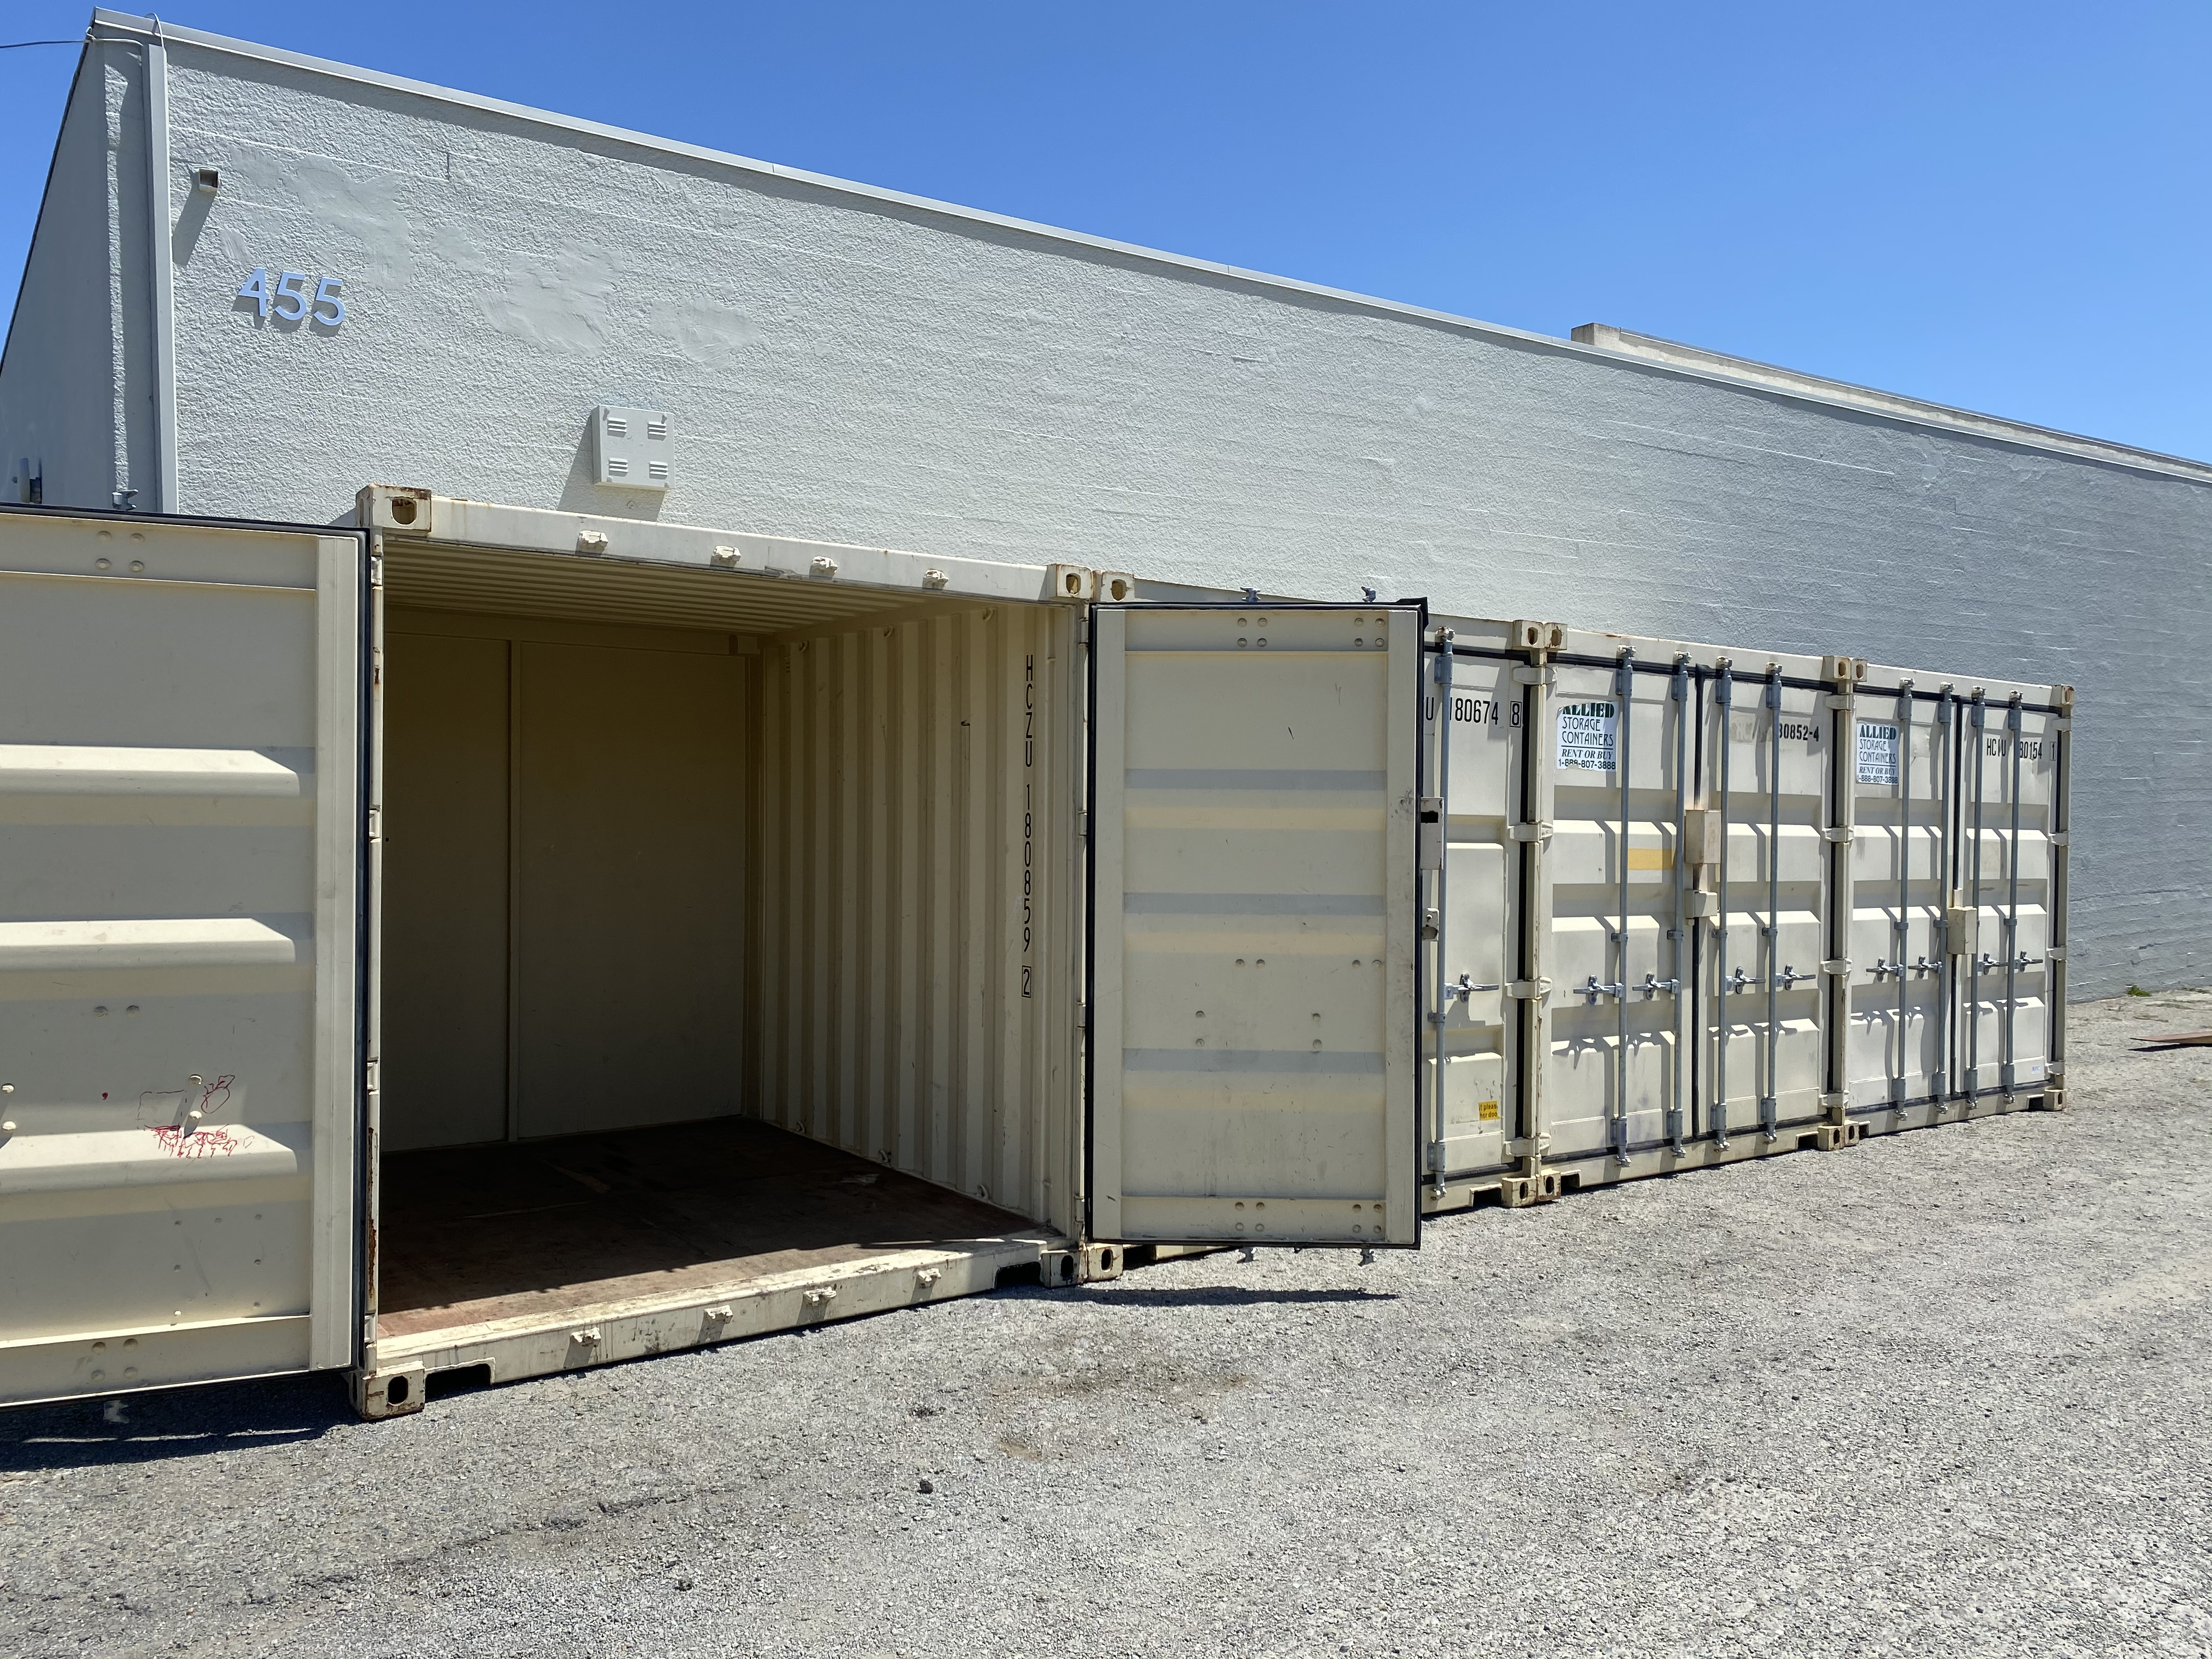 24 hour access container storage